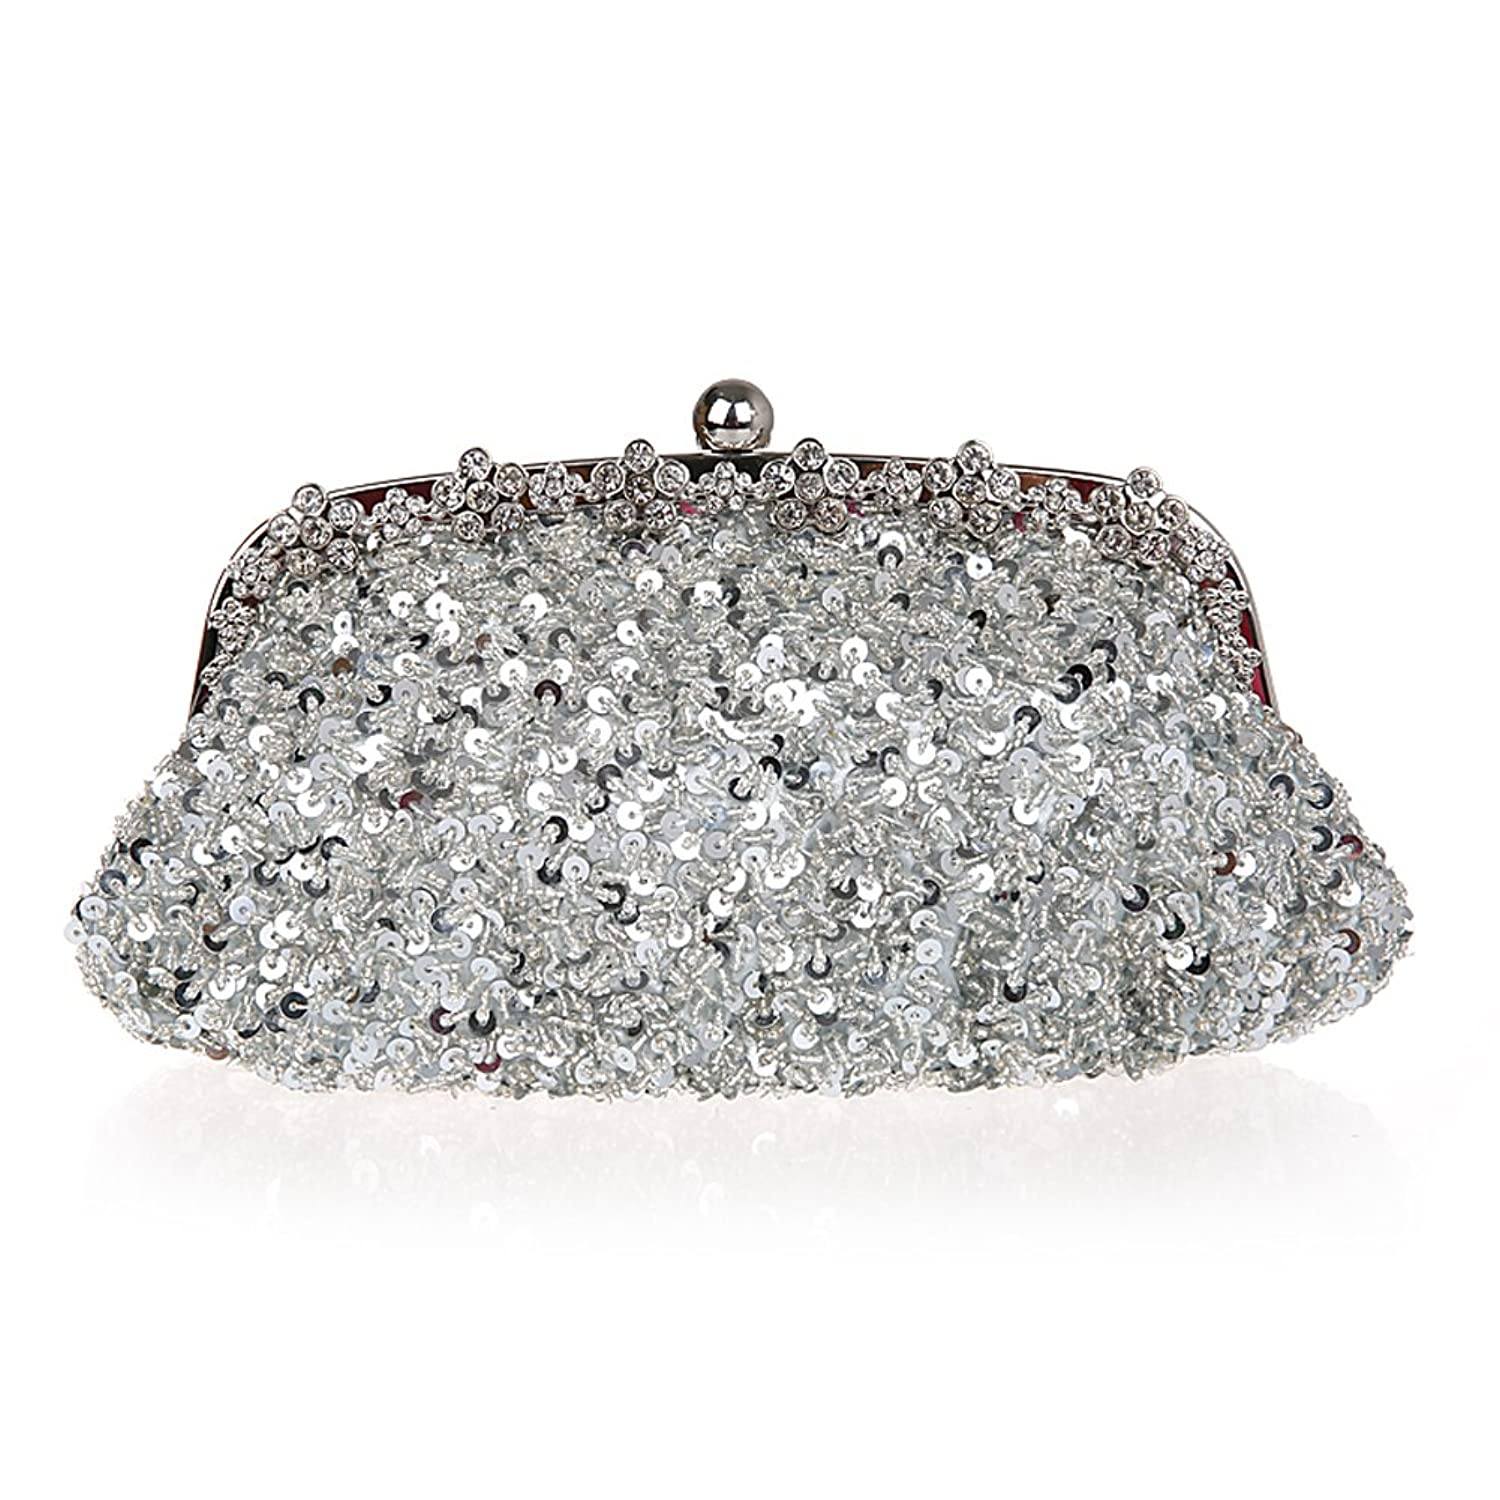 TopTie Bling Beads and Sequins Purse Rhinestones Embellished Frame Clutch